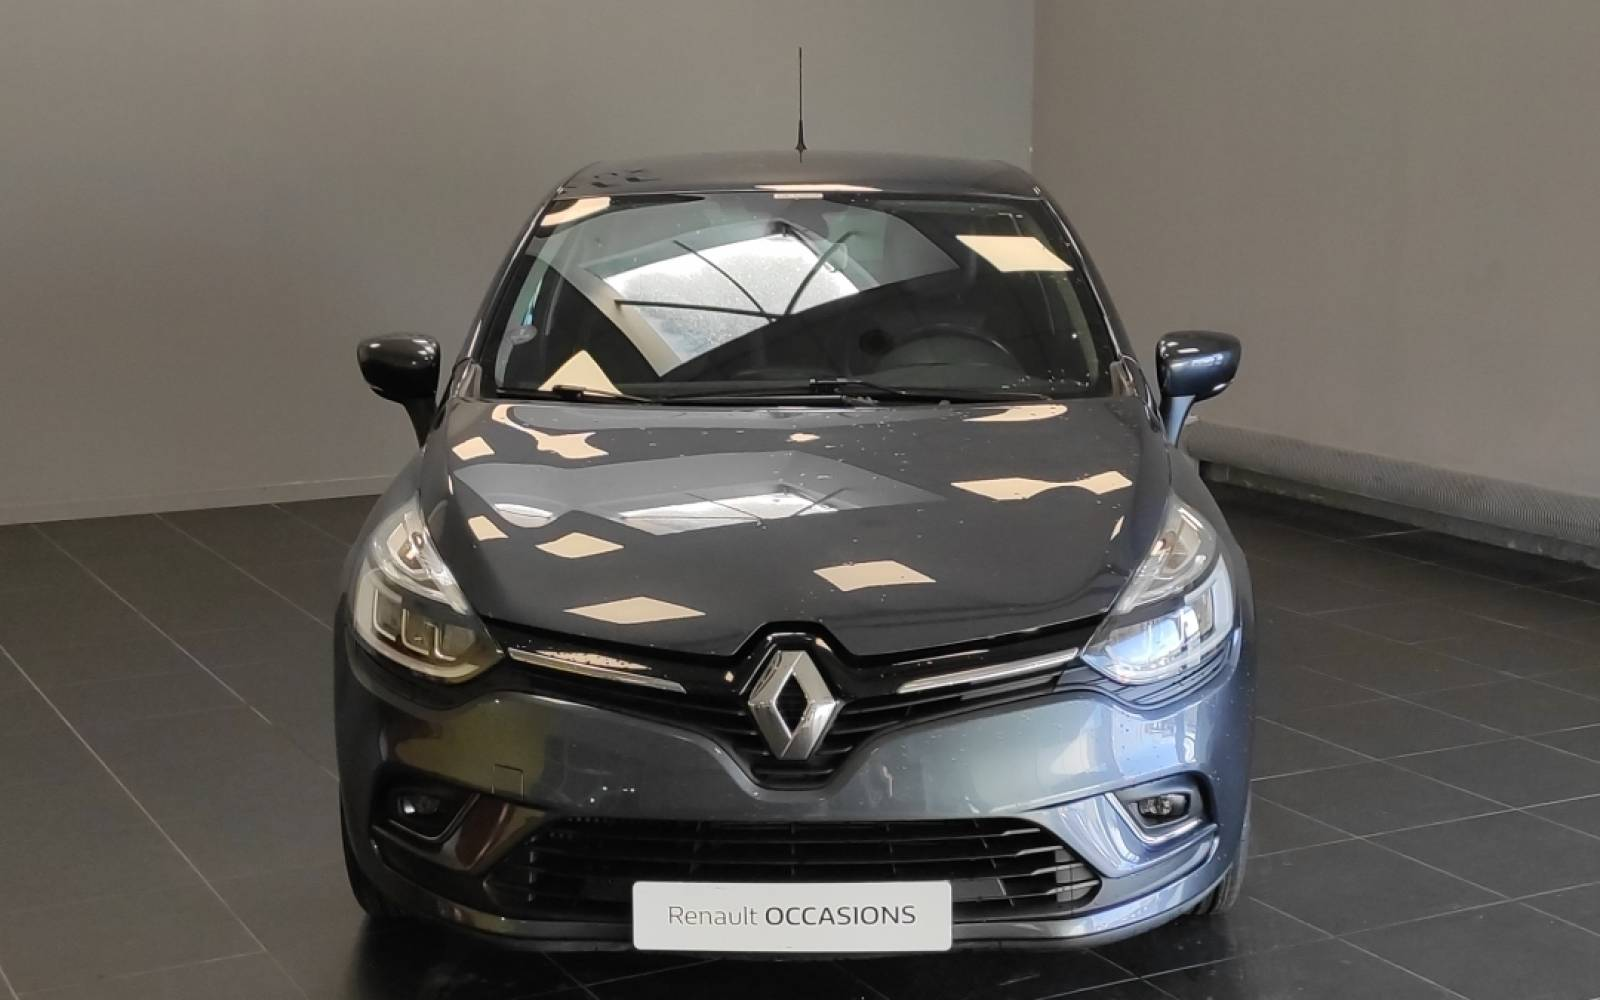 RENAULT Clio TCe 90 Energy - véhicule d'occasion - Site Internet Faurie - Sarda - 24750 - Trelissac - 2